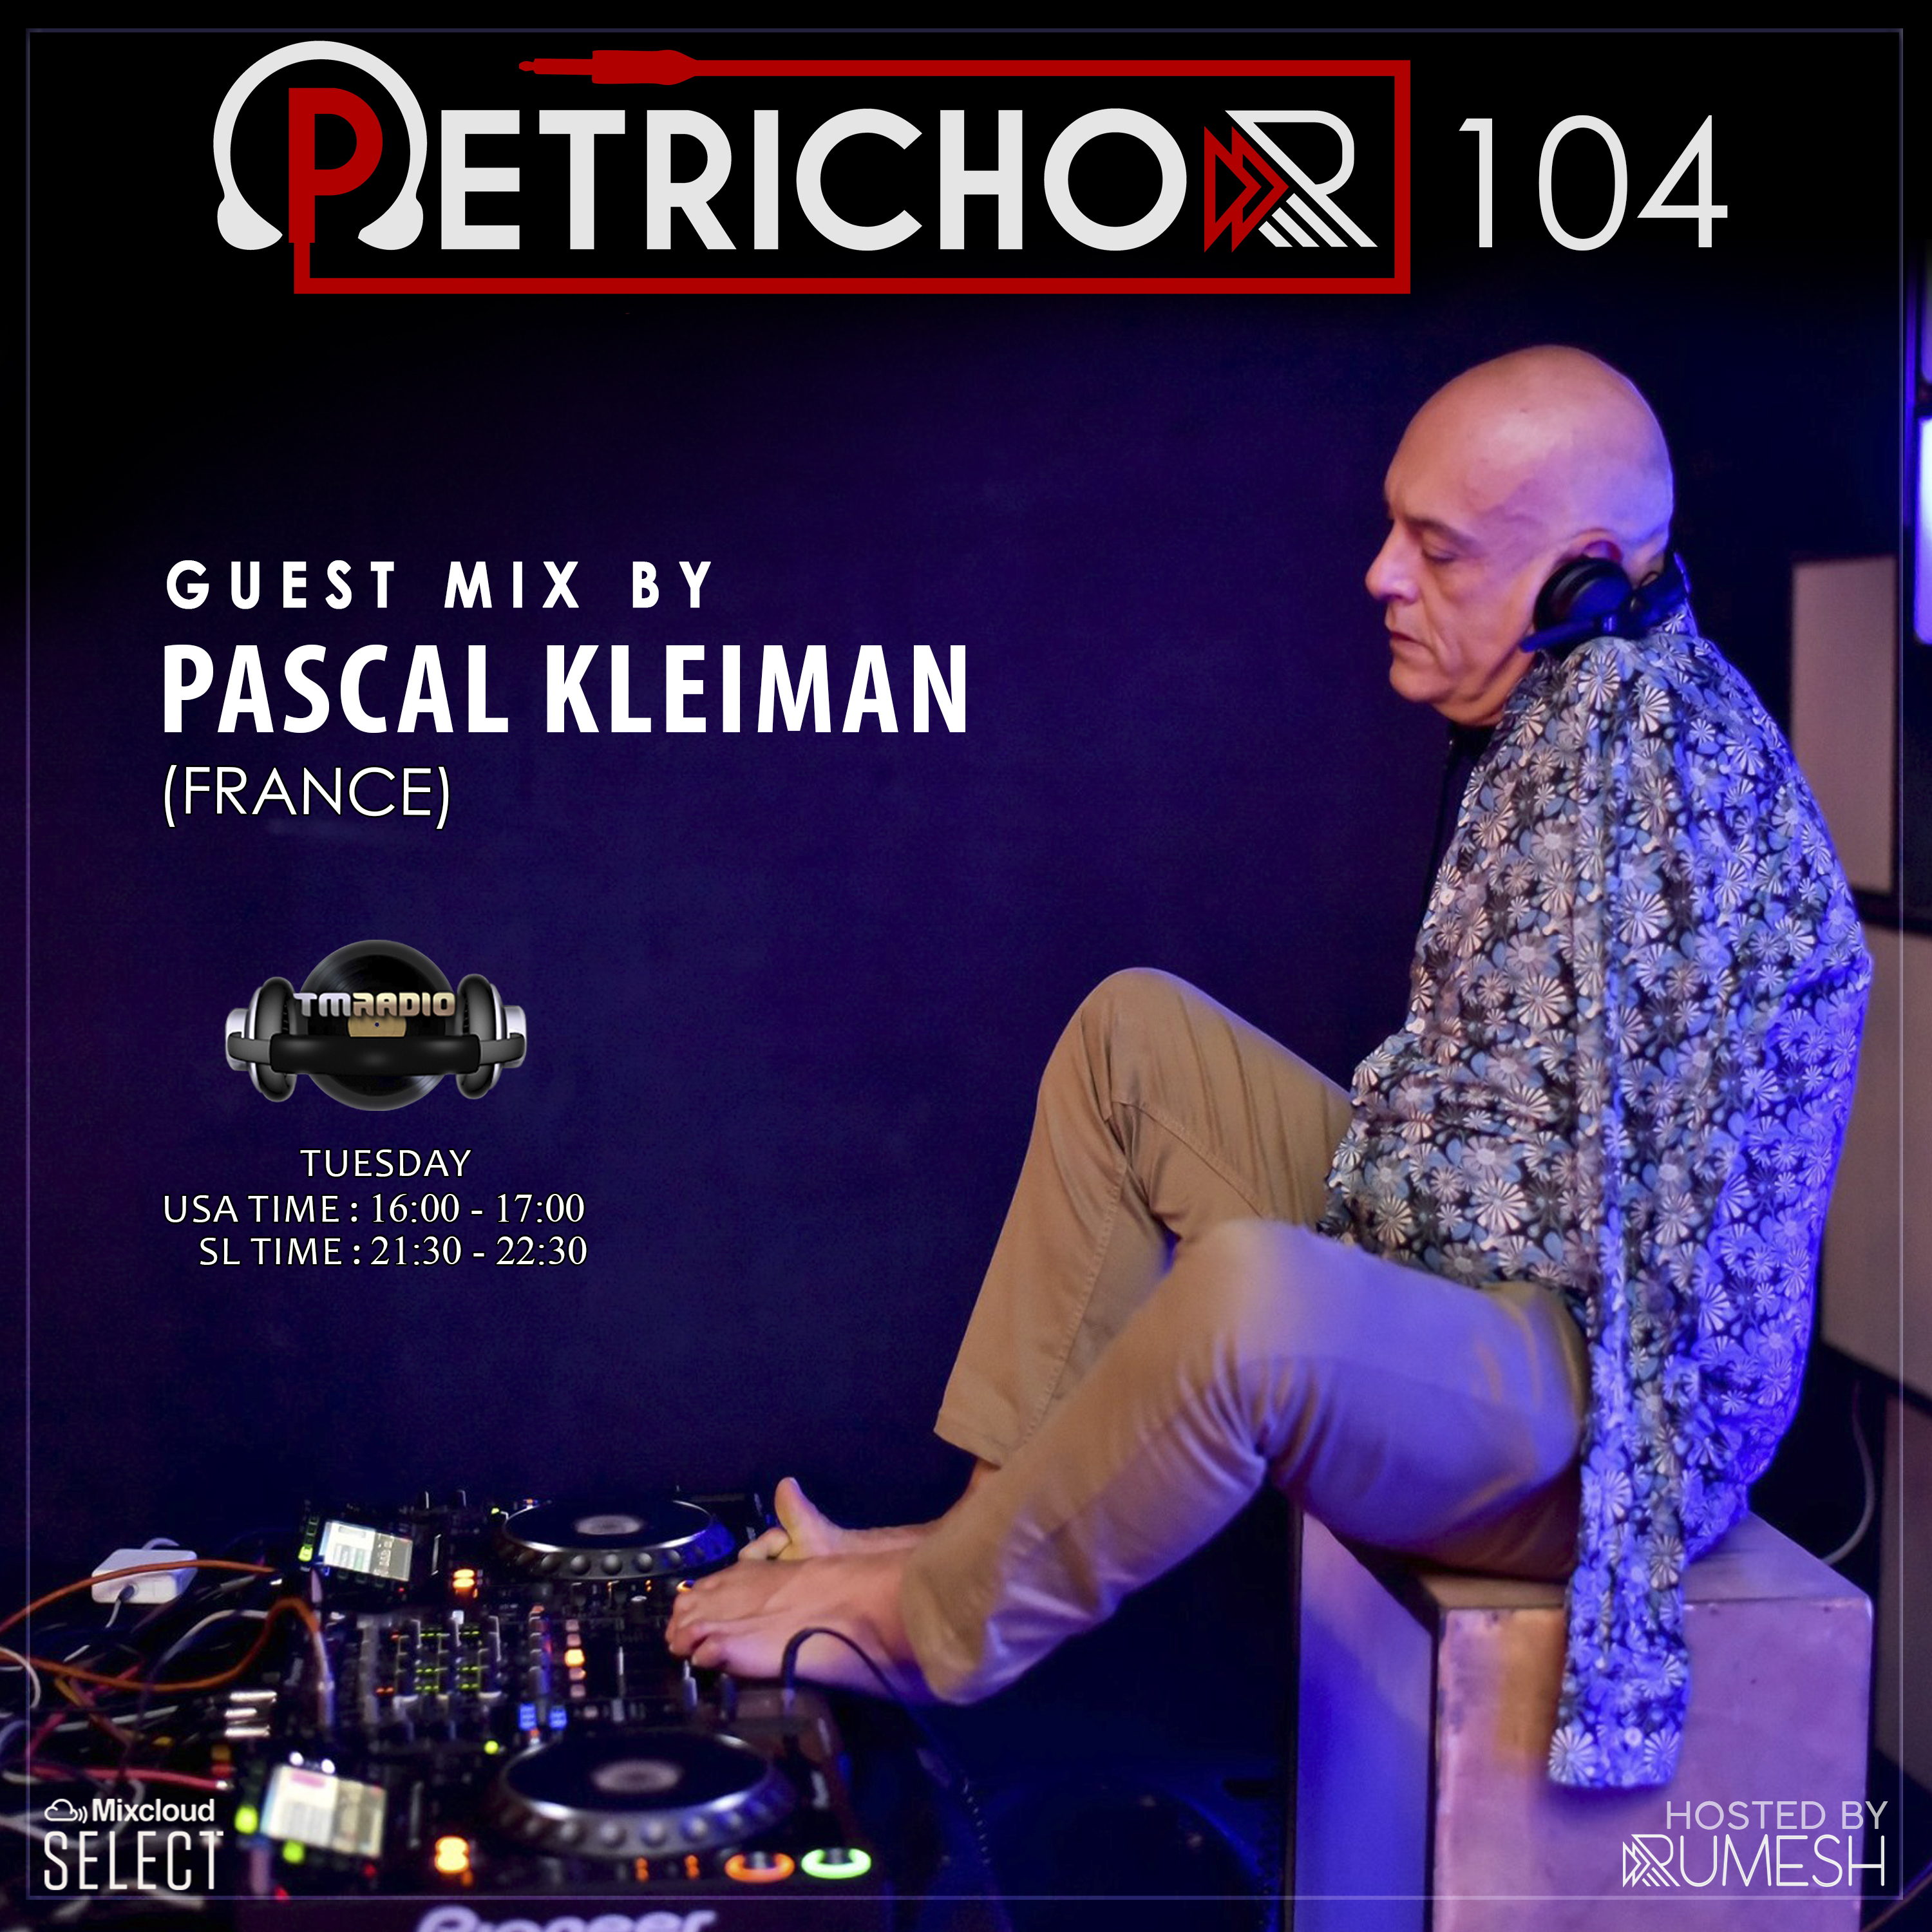 Petrichor :: Petrichor 104 Guest Mix by Pascal Kleiman -(France) (aired on May 18th) banner logo